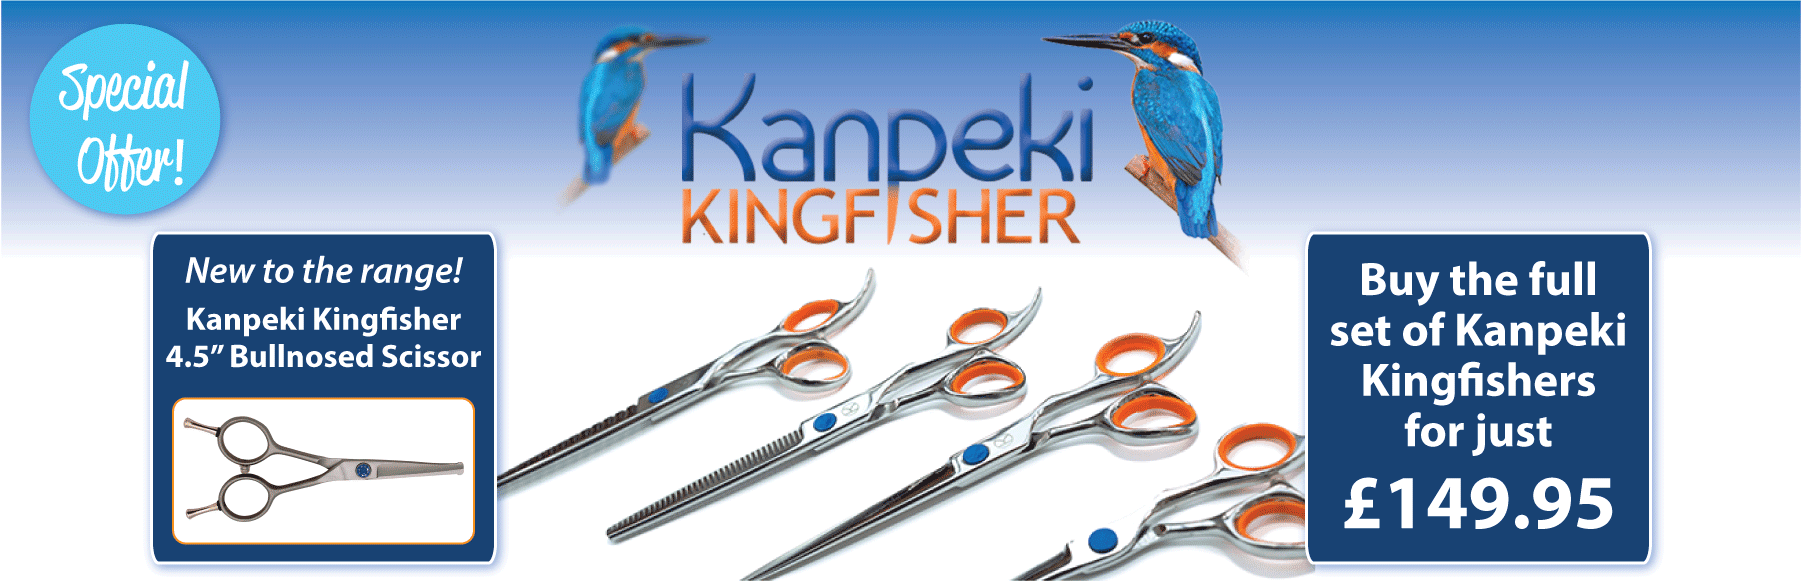 Kanpeki Kingfisher 5 Set For £149.95